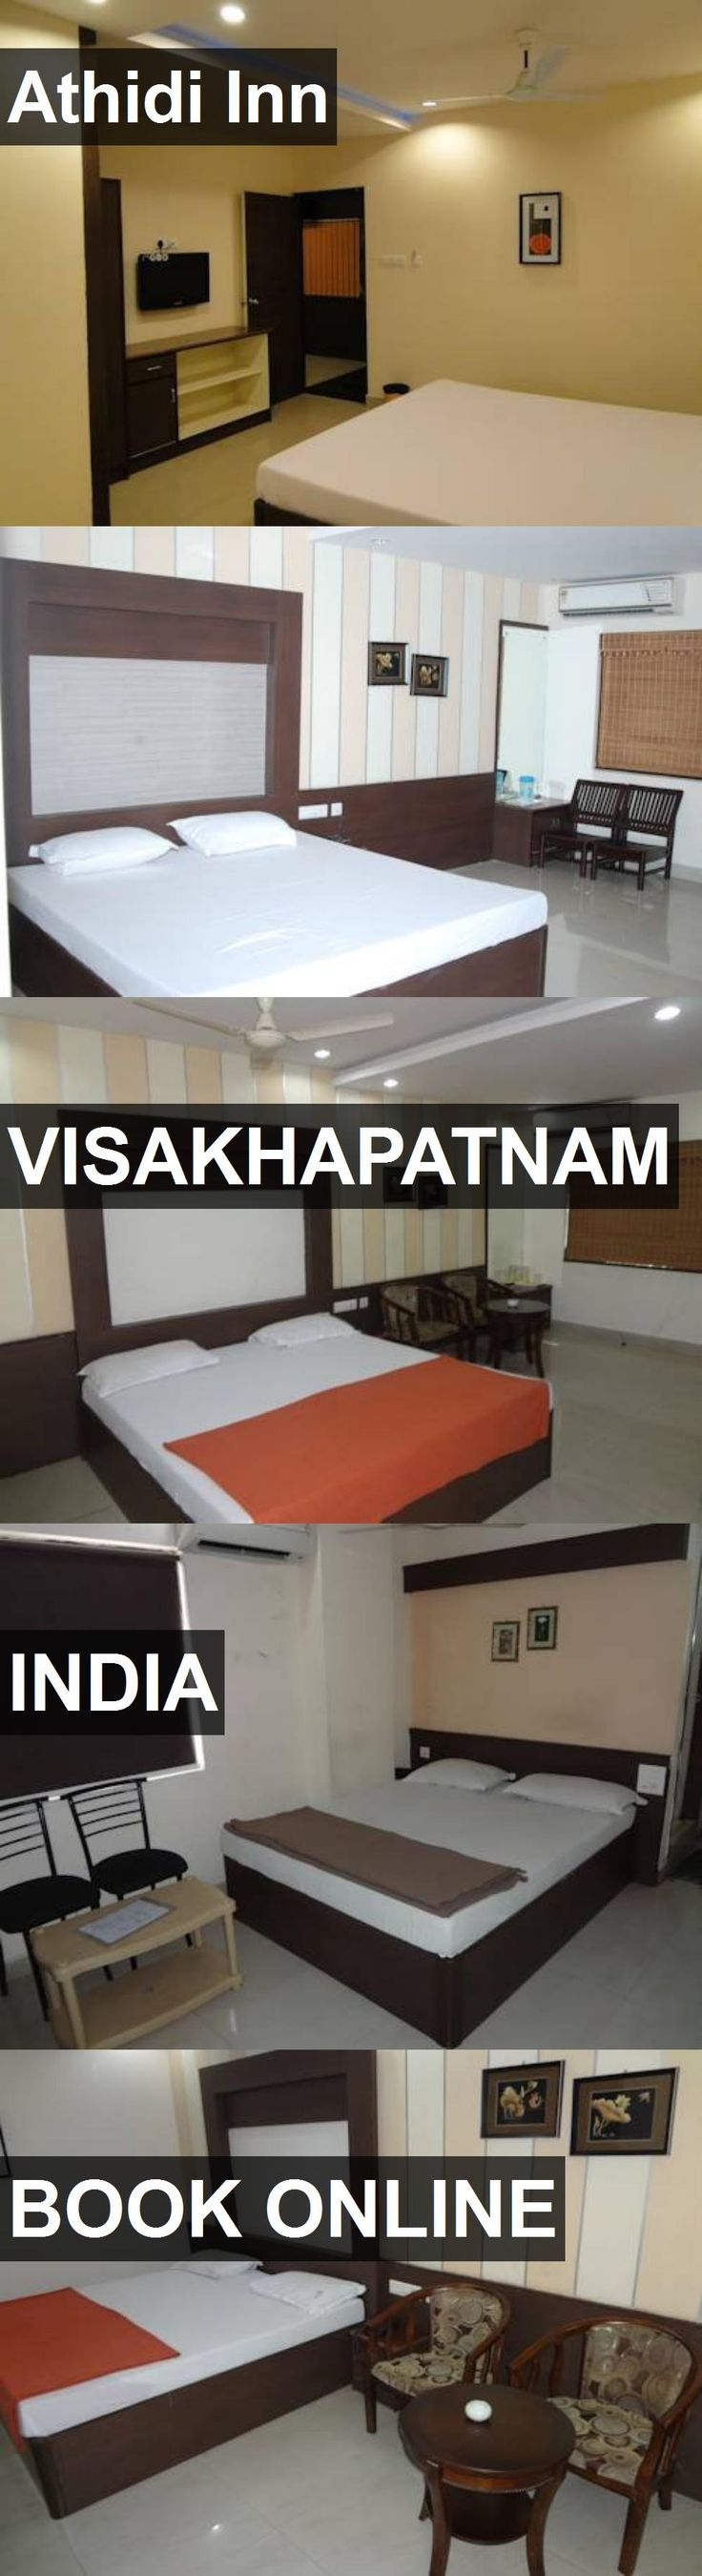 Hotel Athidi Inn in Visakhapatnam, India. For more information, photos, reviews and best prices please follow the link. #India #Visakhapatnam #travel #vacation #hotel